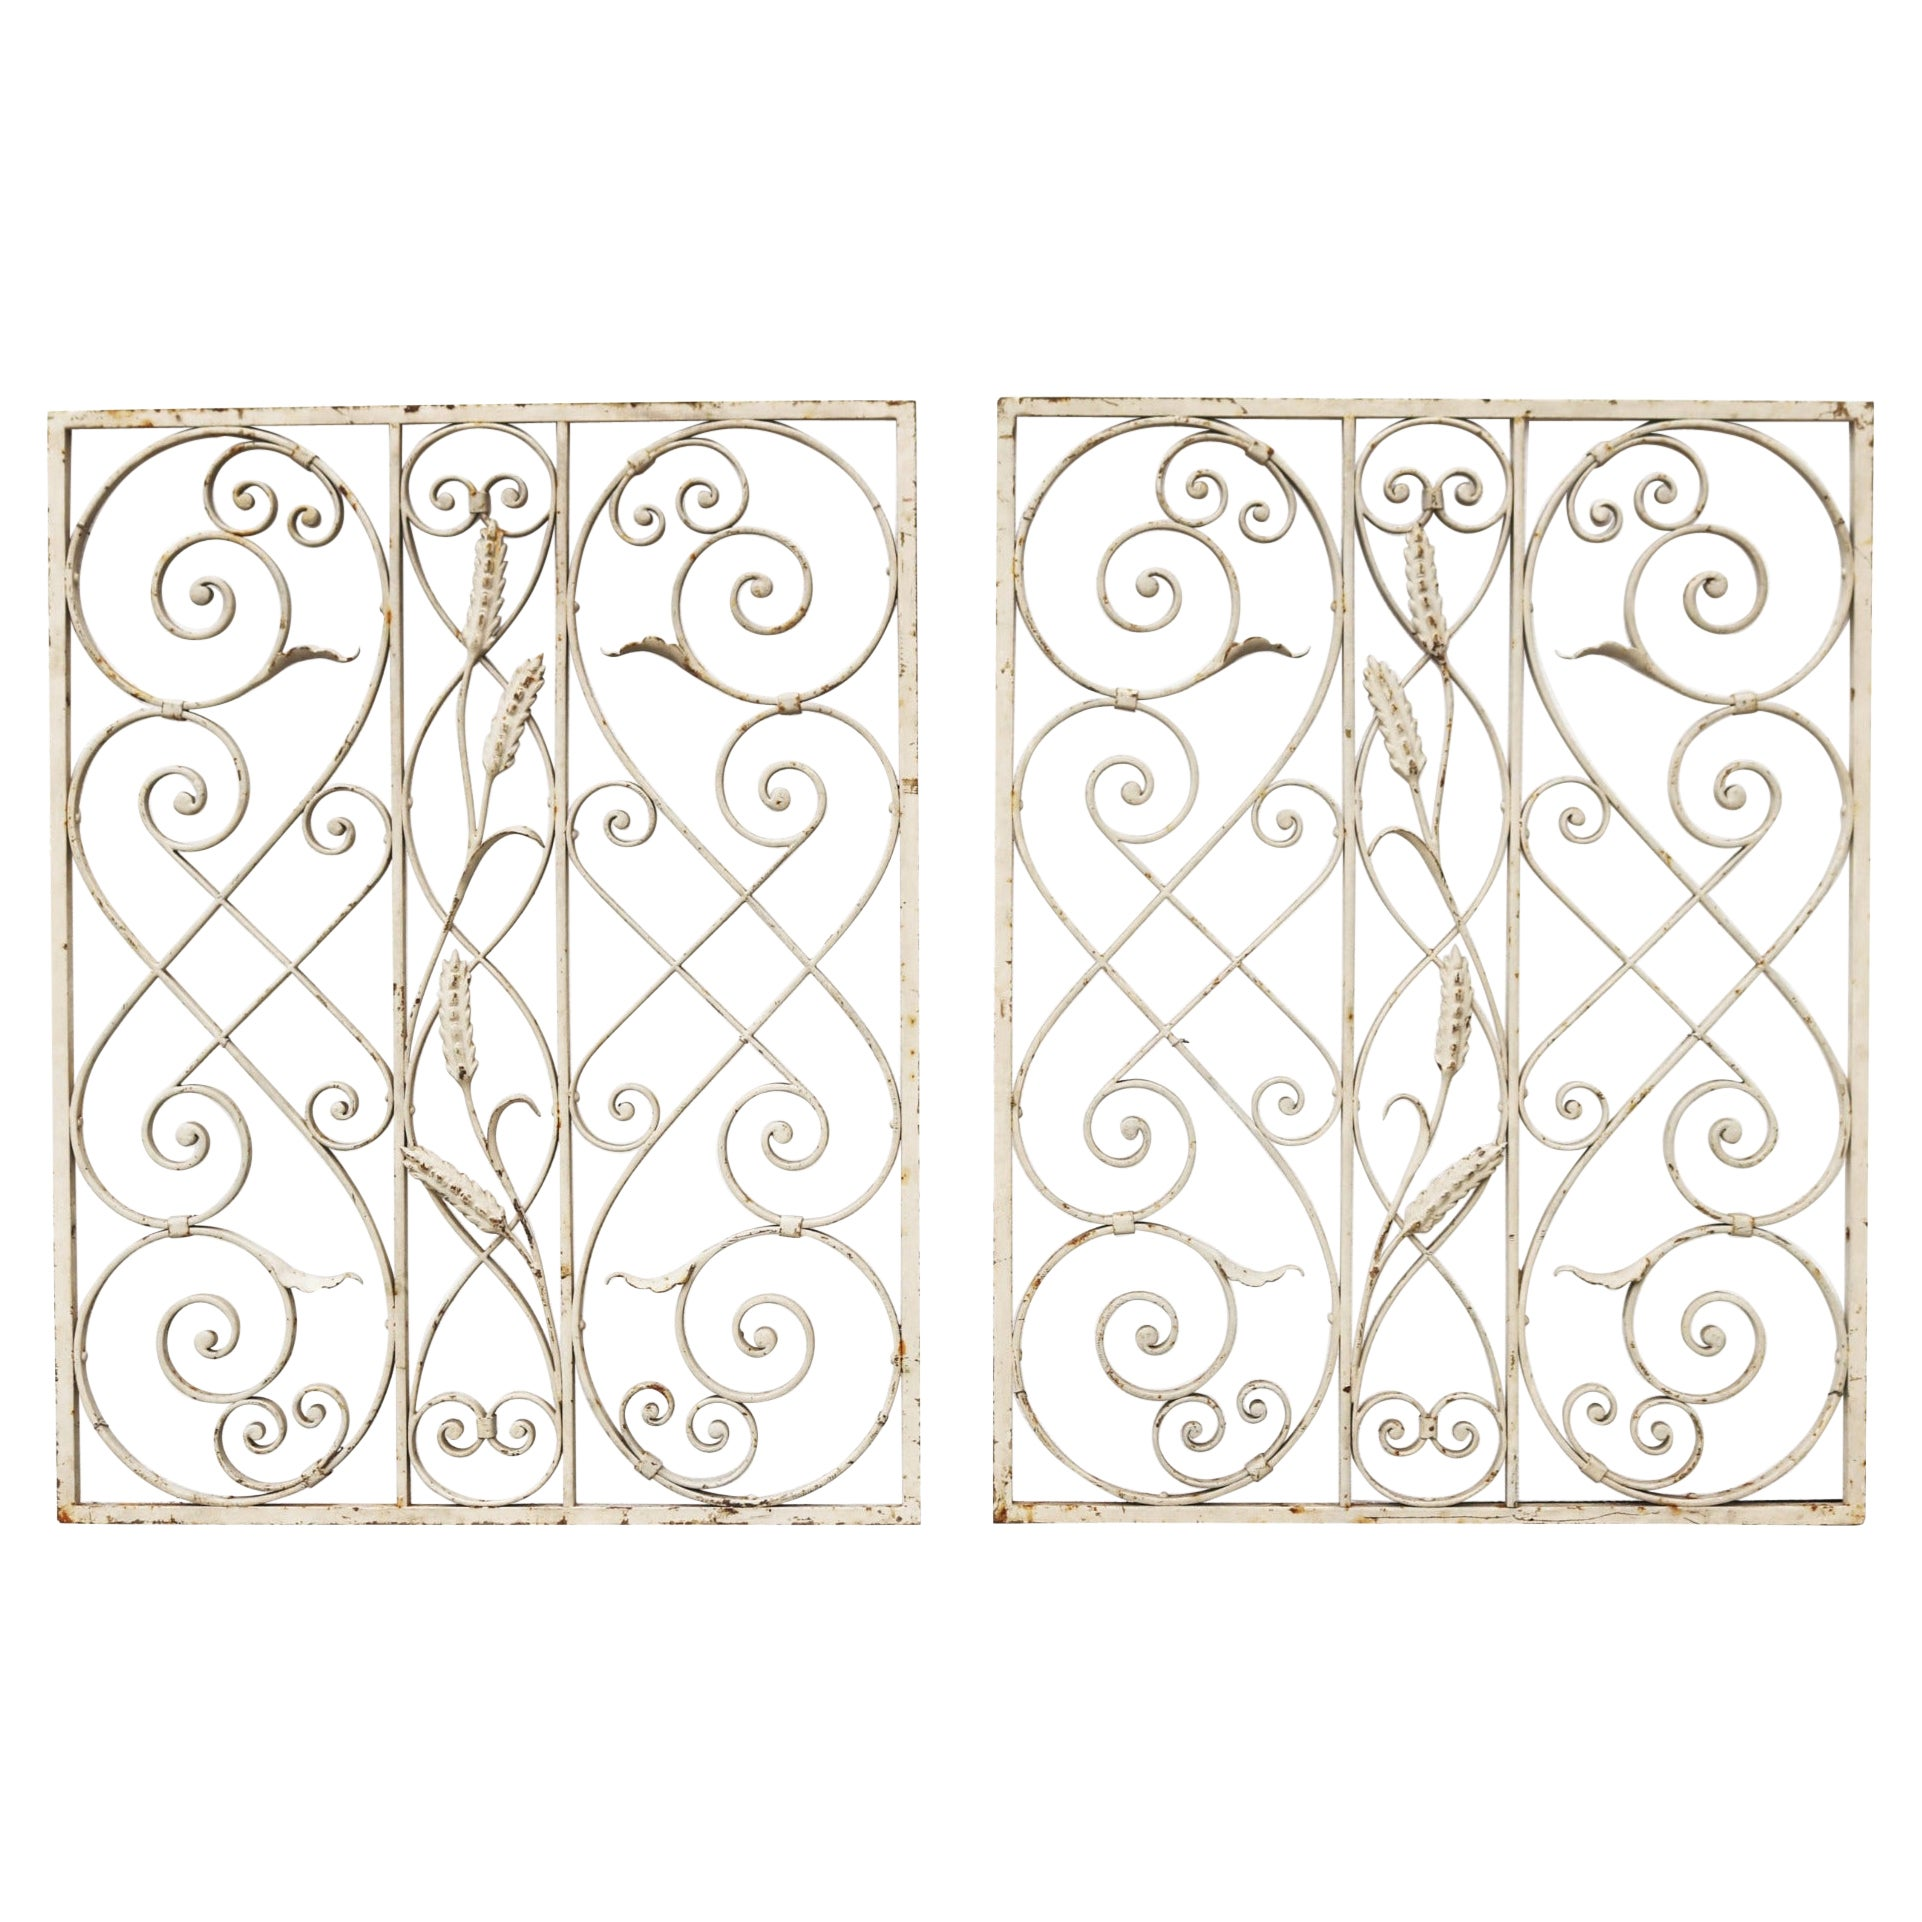 Pair of Reclaimed Wrought Iron Grills